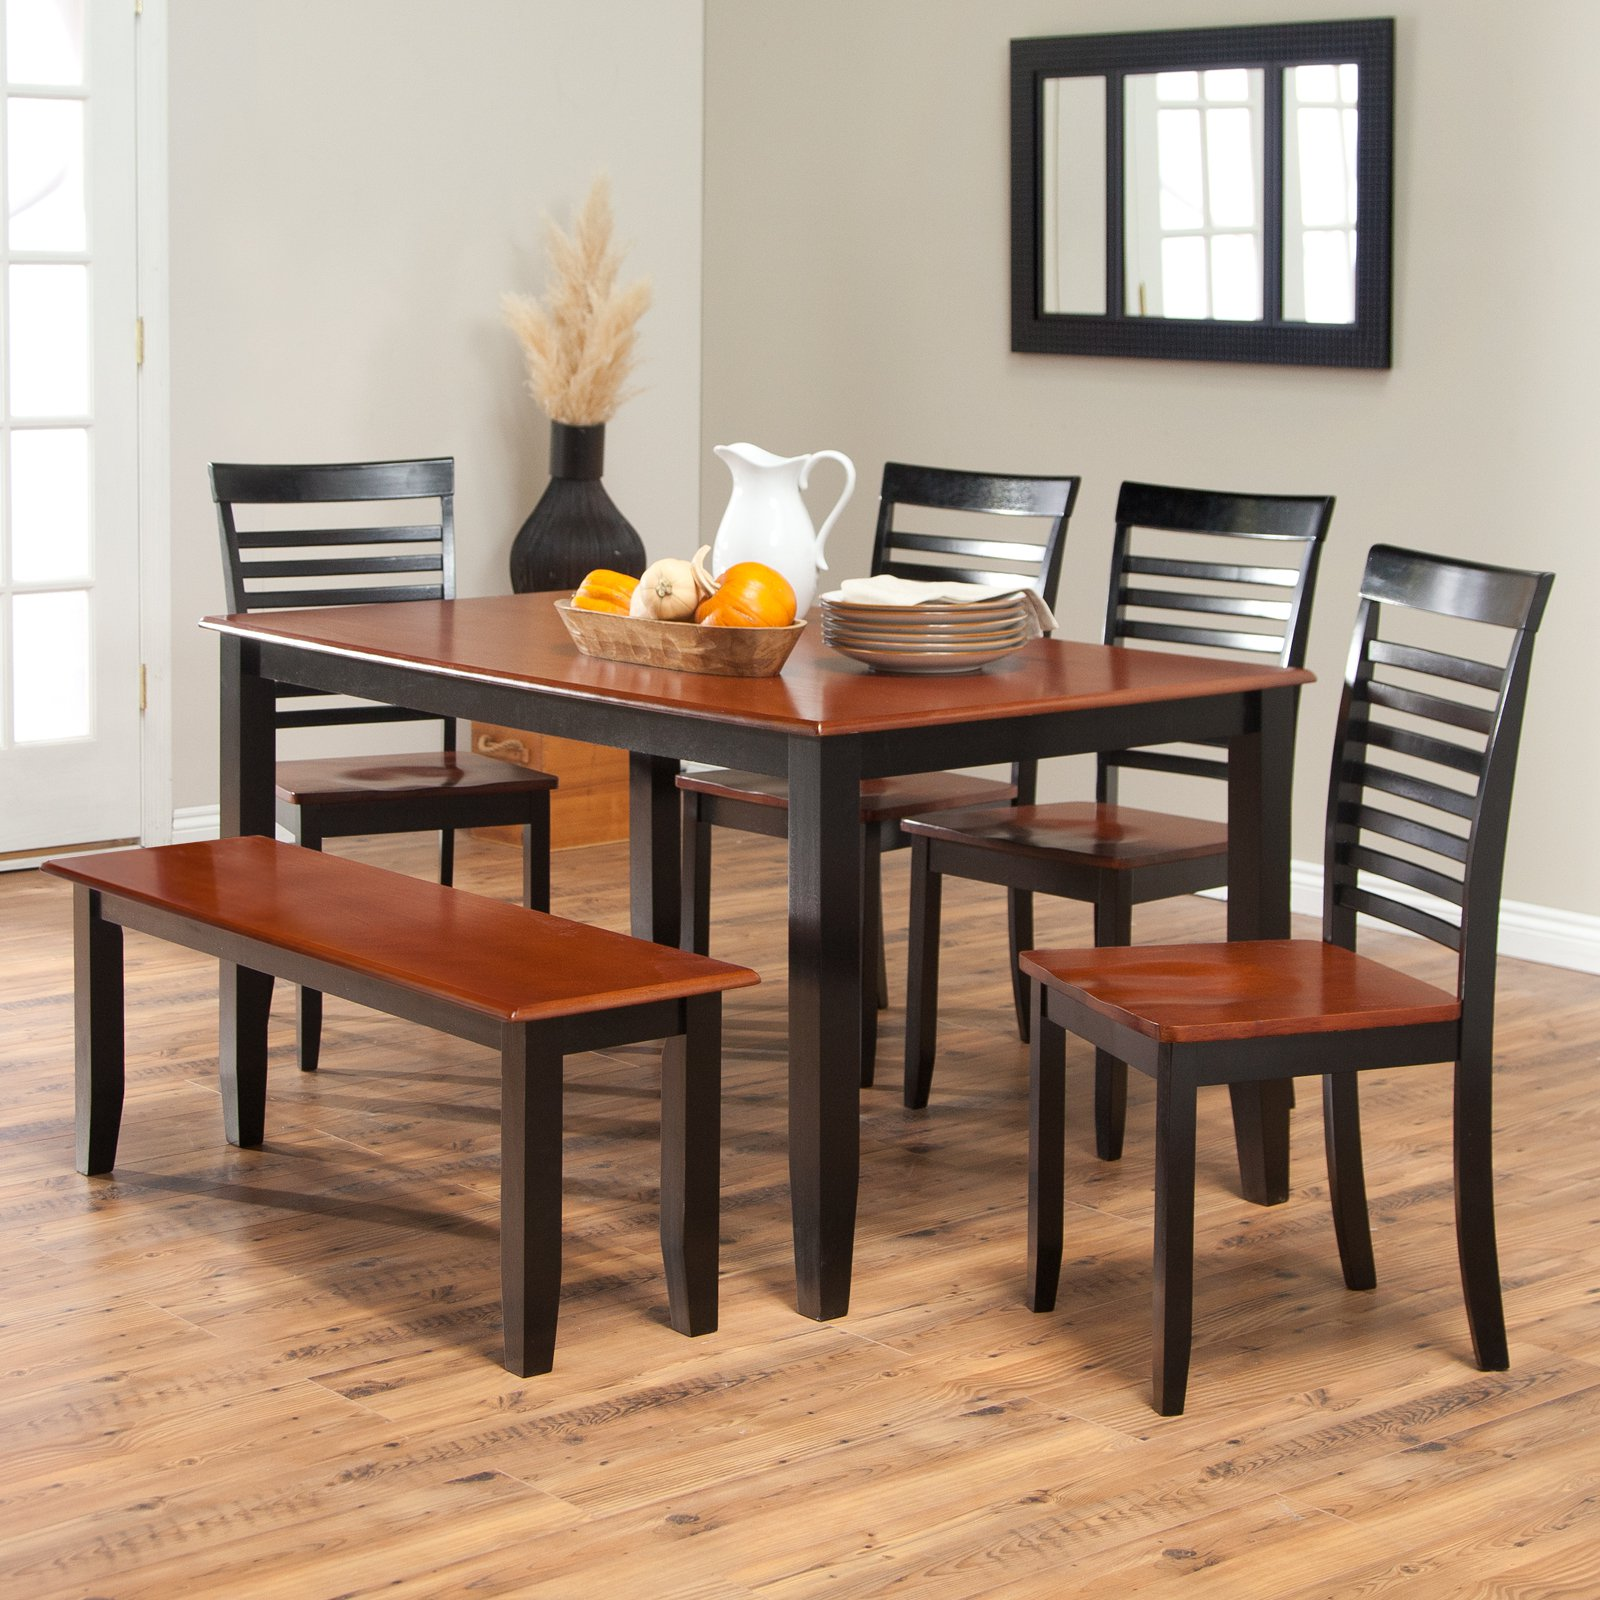 Cherry Kitchen Table Sets hen how to Home Decorating Ideas